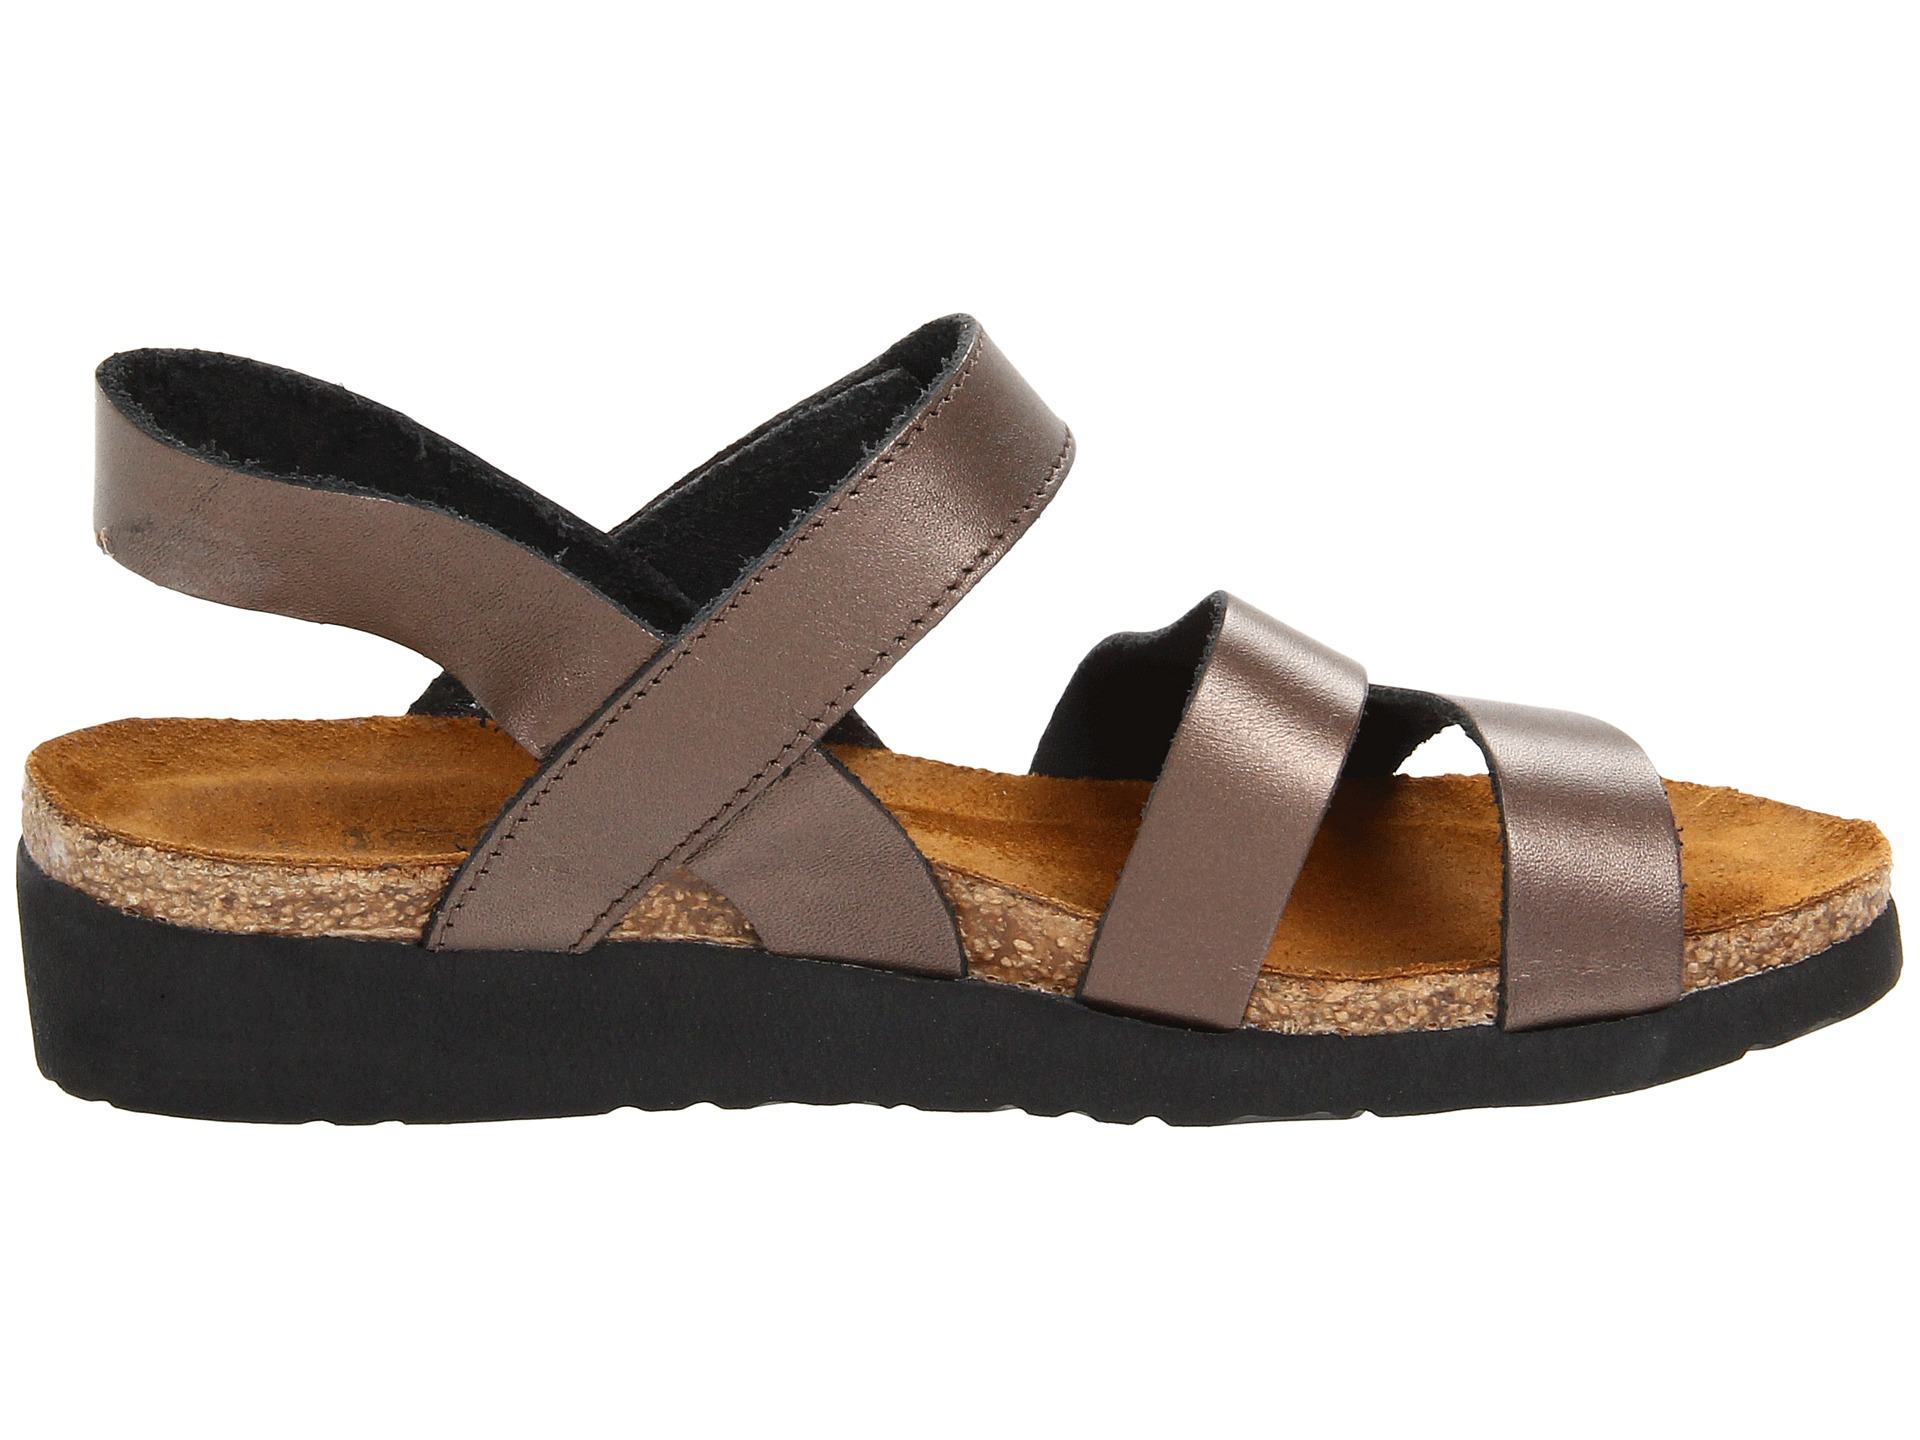 Naot Footwear Kayla Copper Leather Zappos Com Free